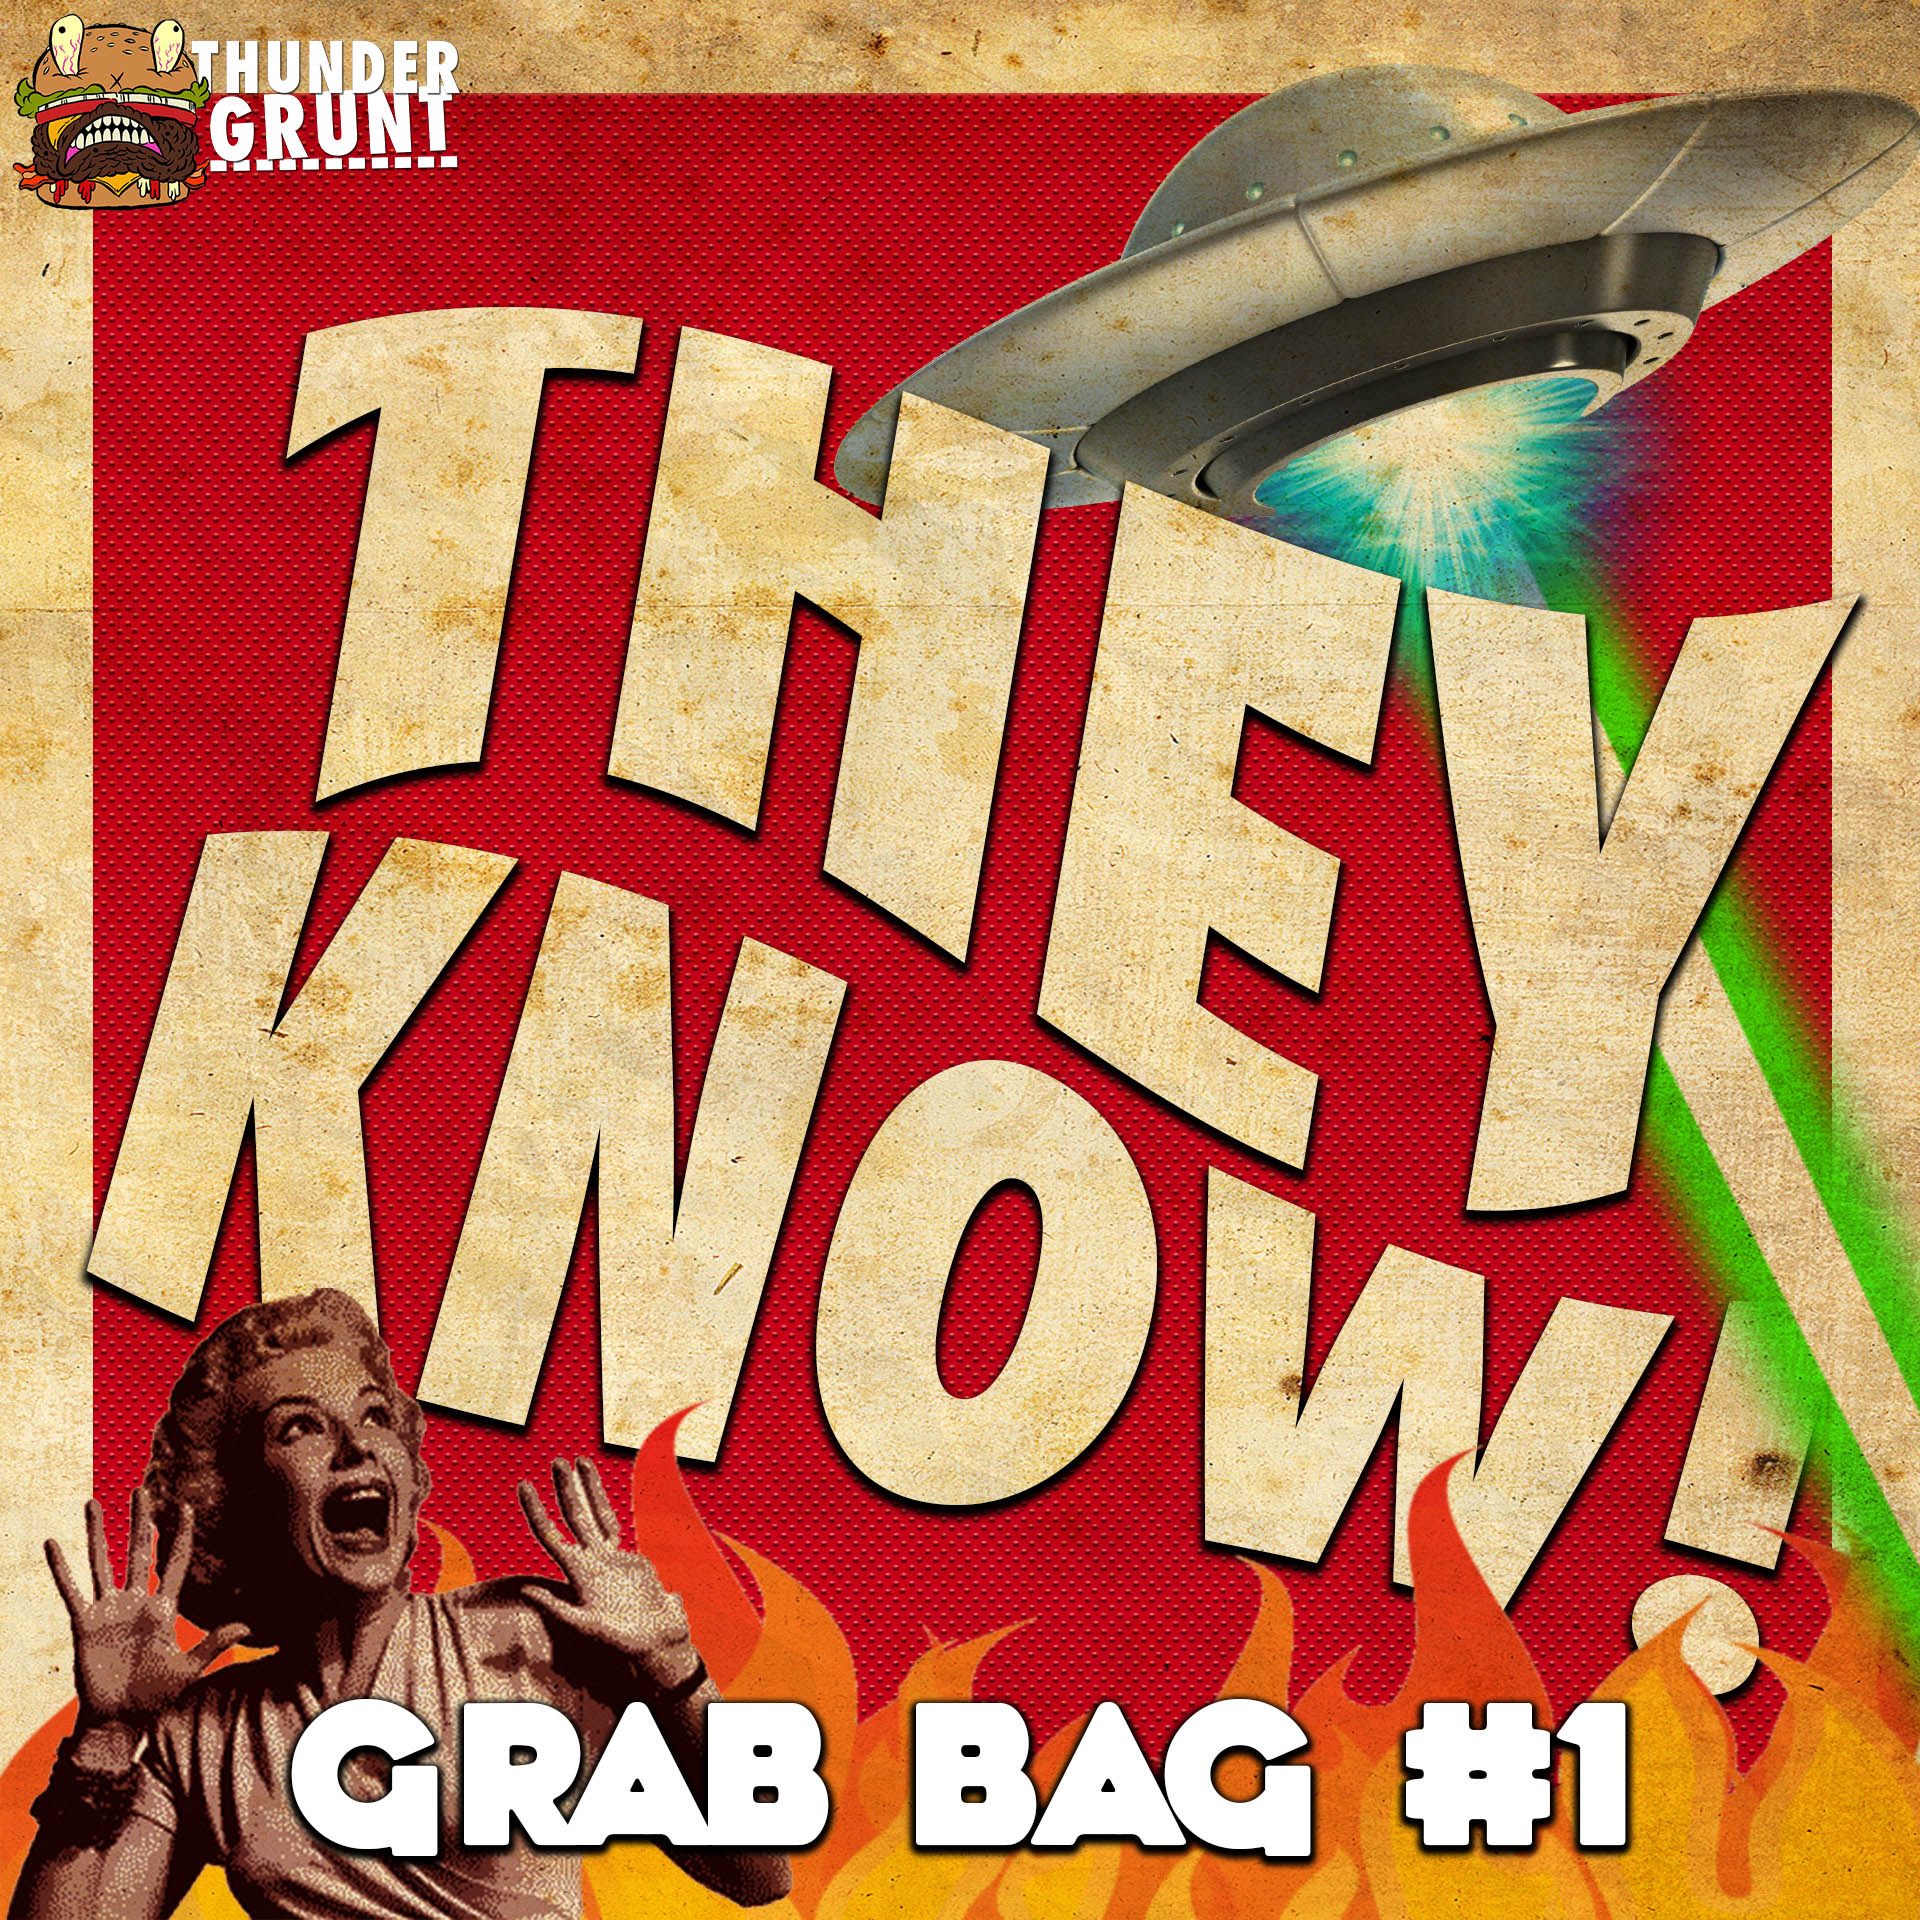 THEY KNOW! 010 | GRAB BAG #1